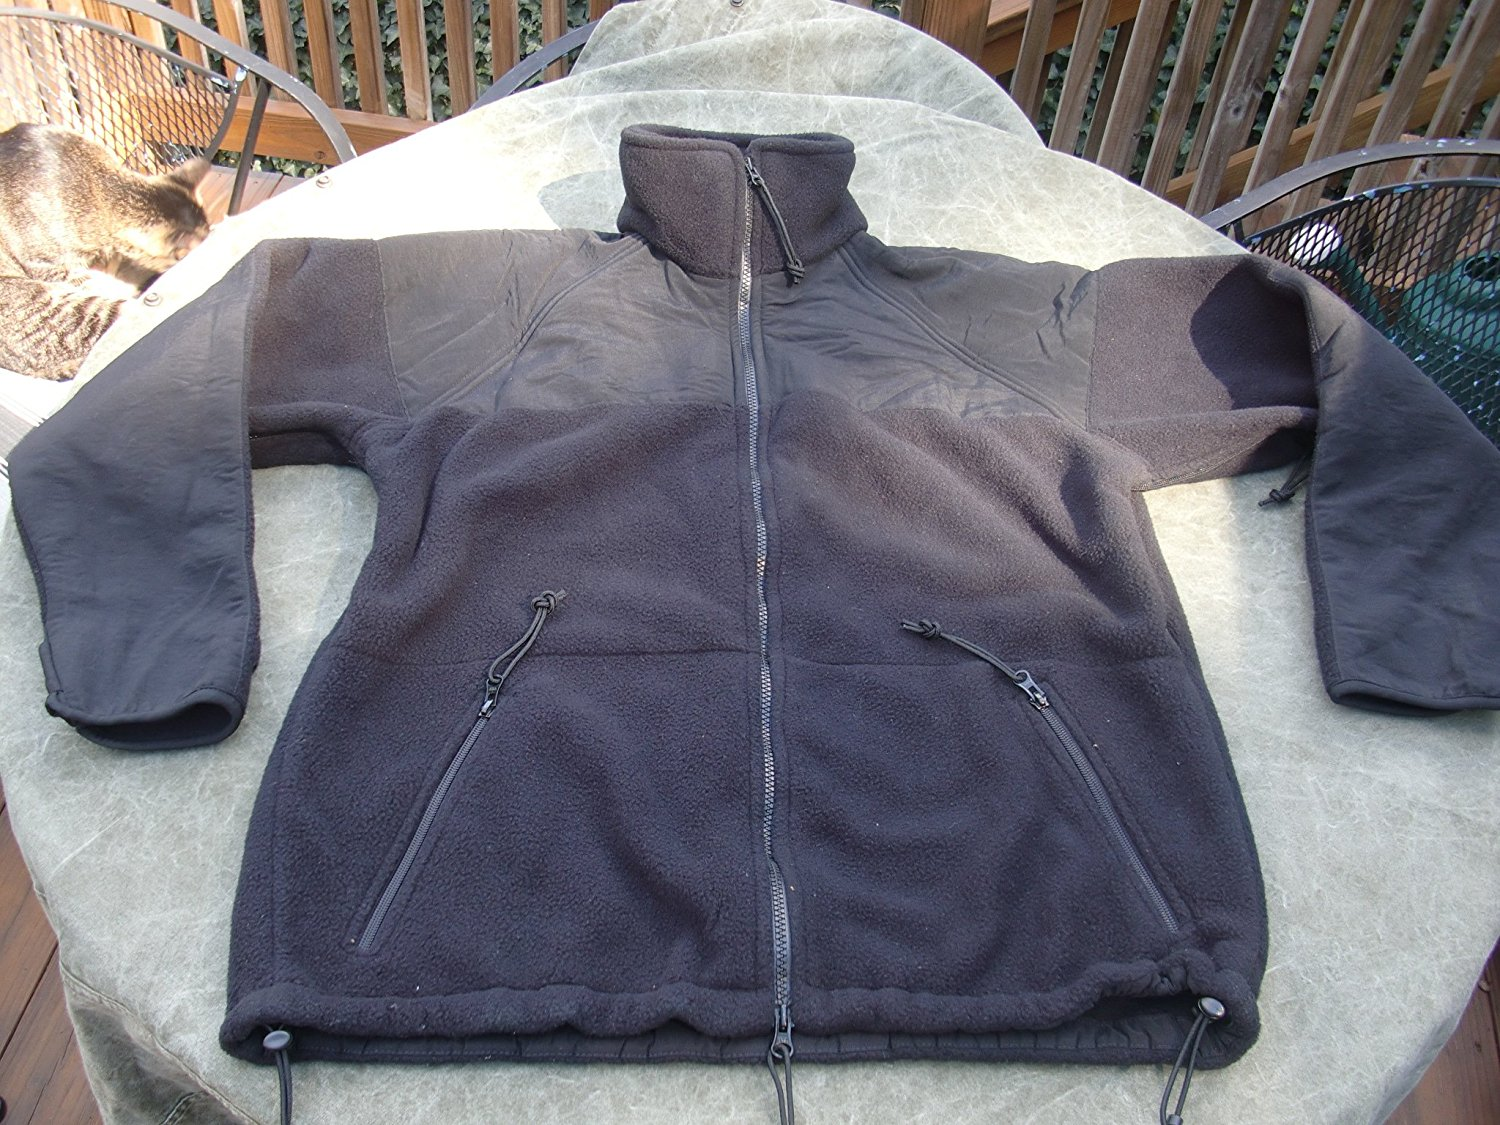 c72545902da Cheap 300 Polartec Fleece Jacket, find 300 Polartec Fleece Jacket ...